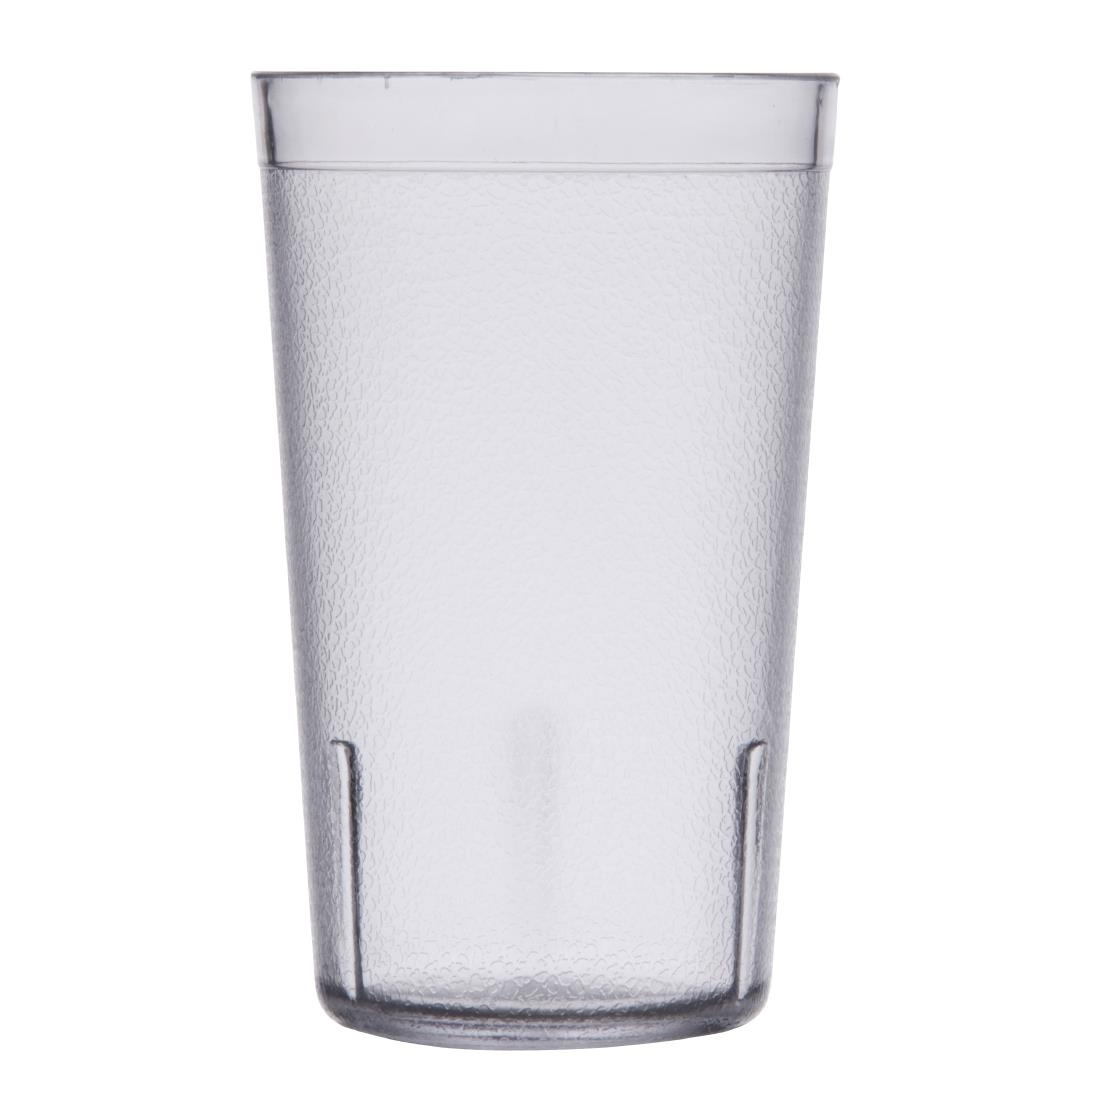 Image of Kristallon Polystyrene Tumblers 284ml (Pack of 12) Pack of 12